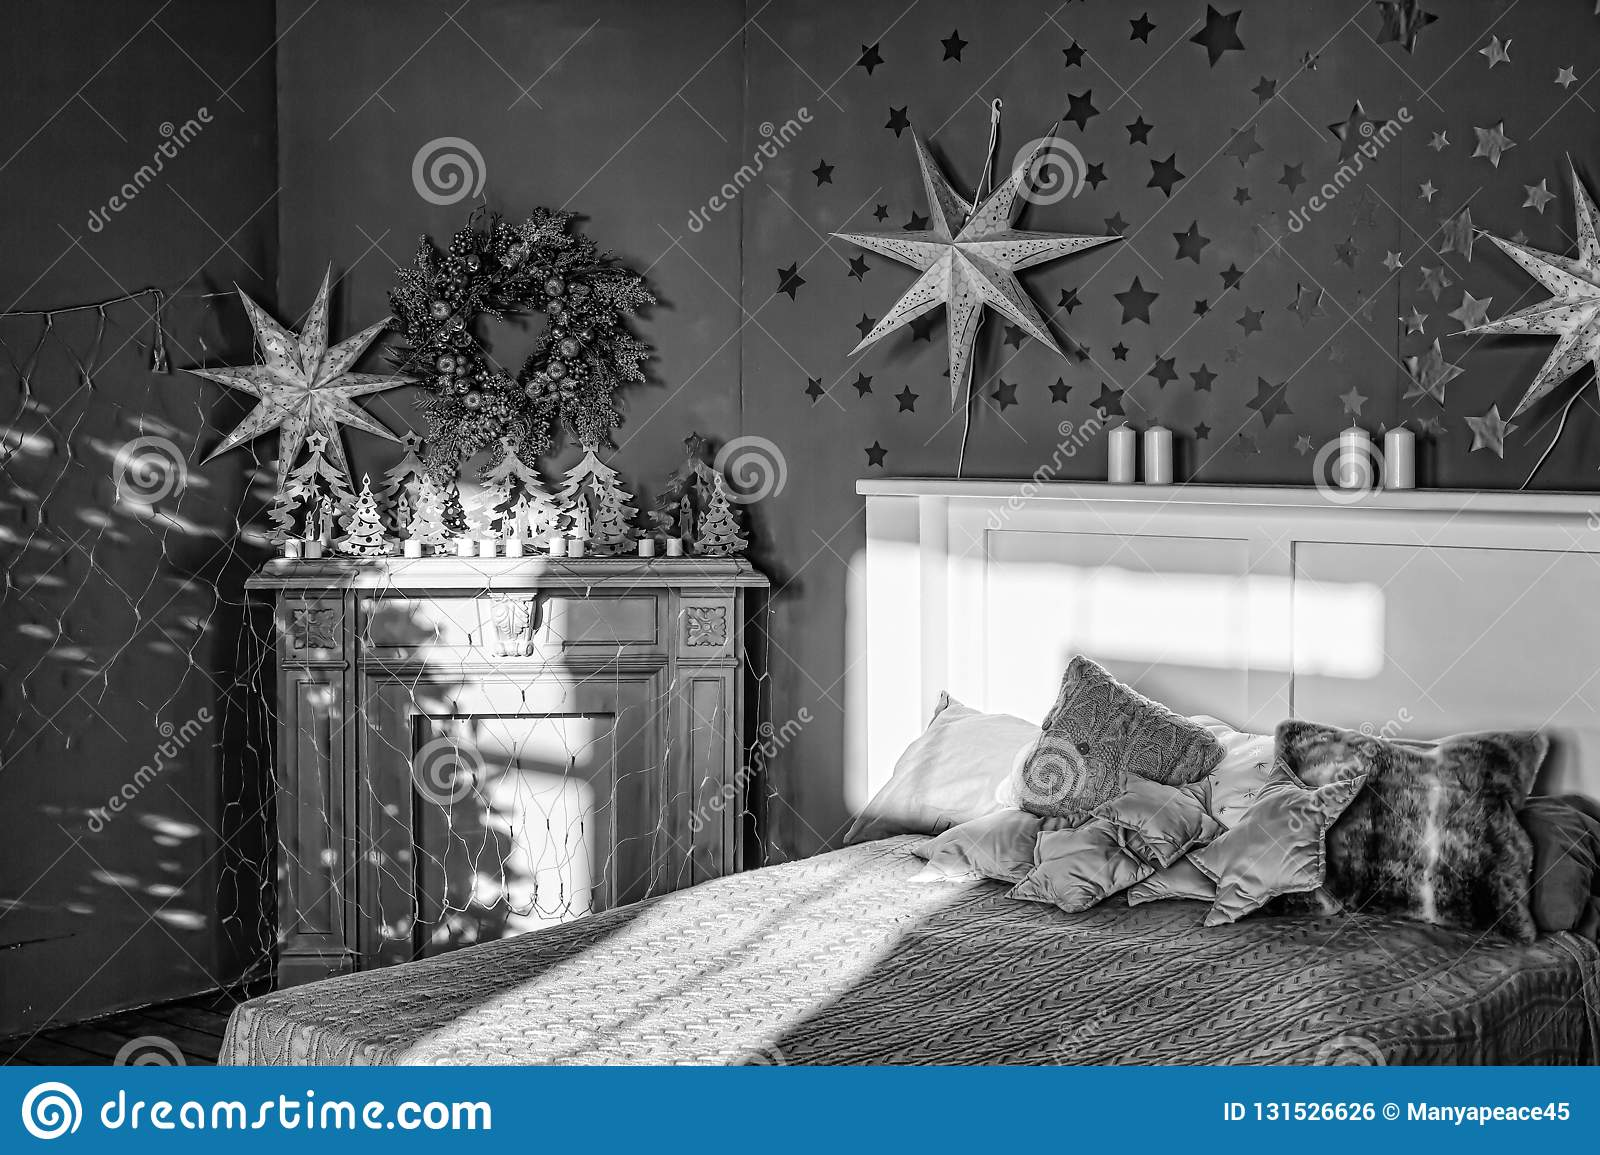 Black and white new years interior bedroom with fireplace decorated with christmas